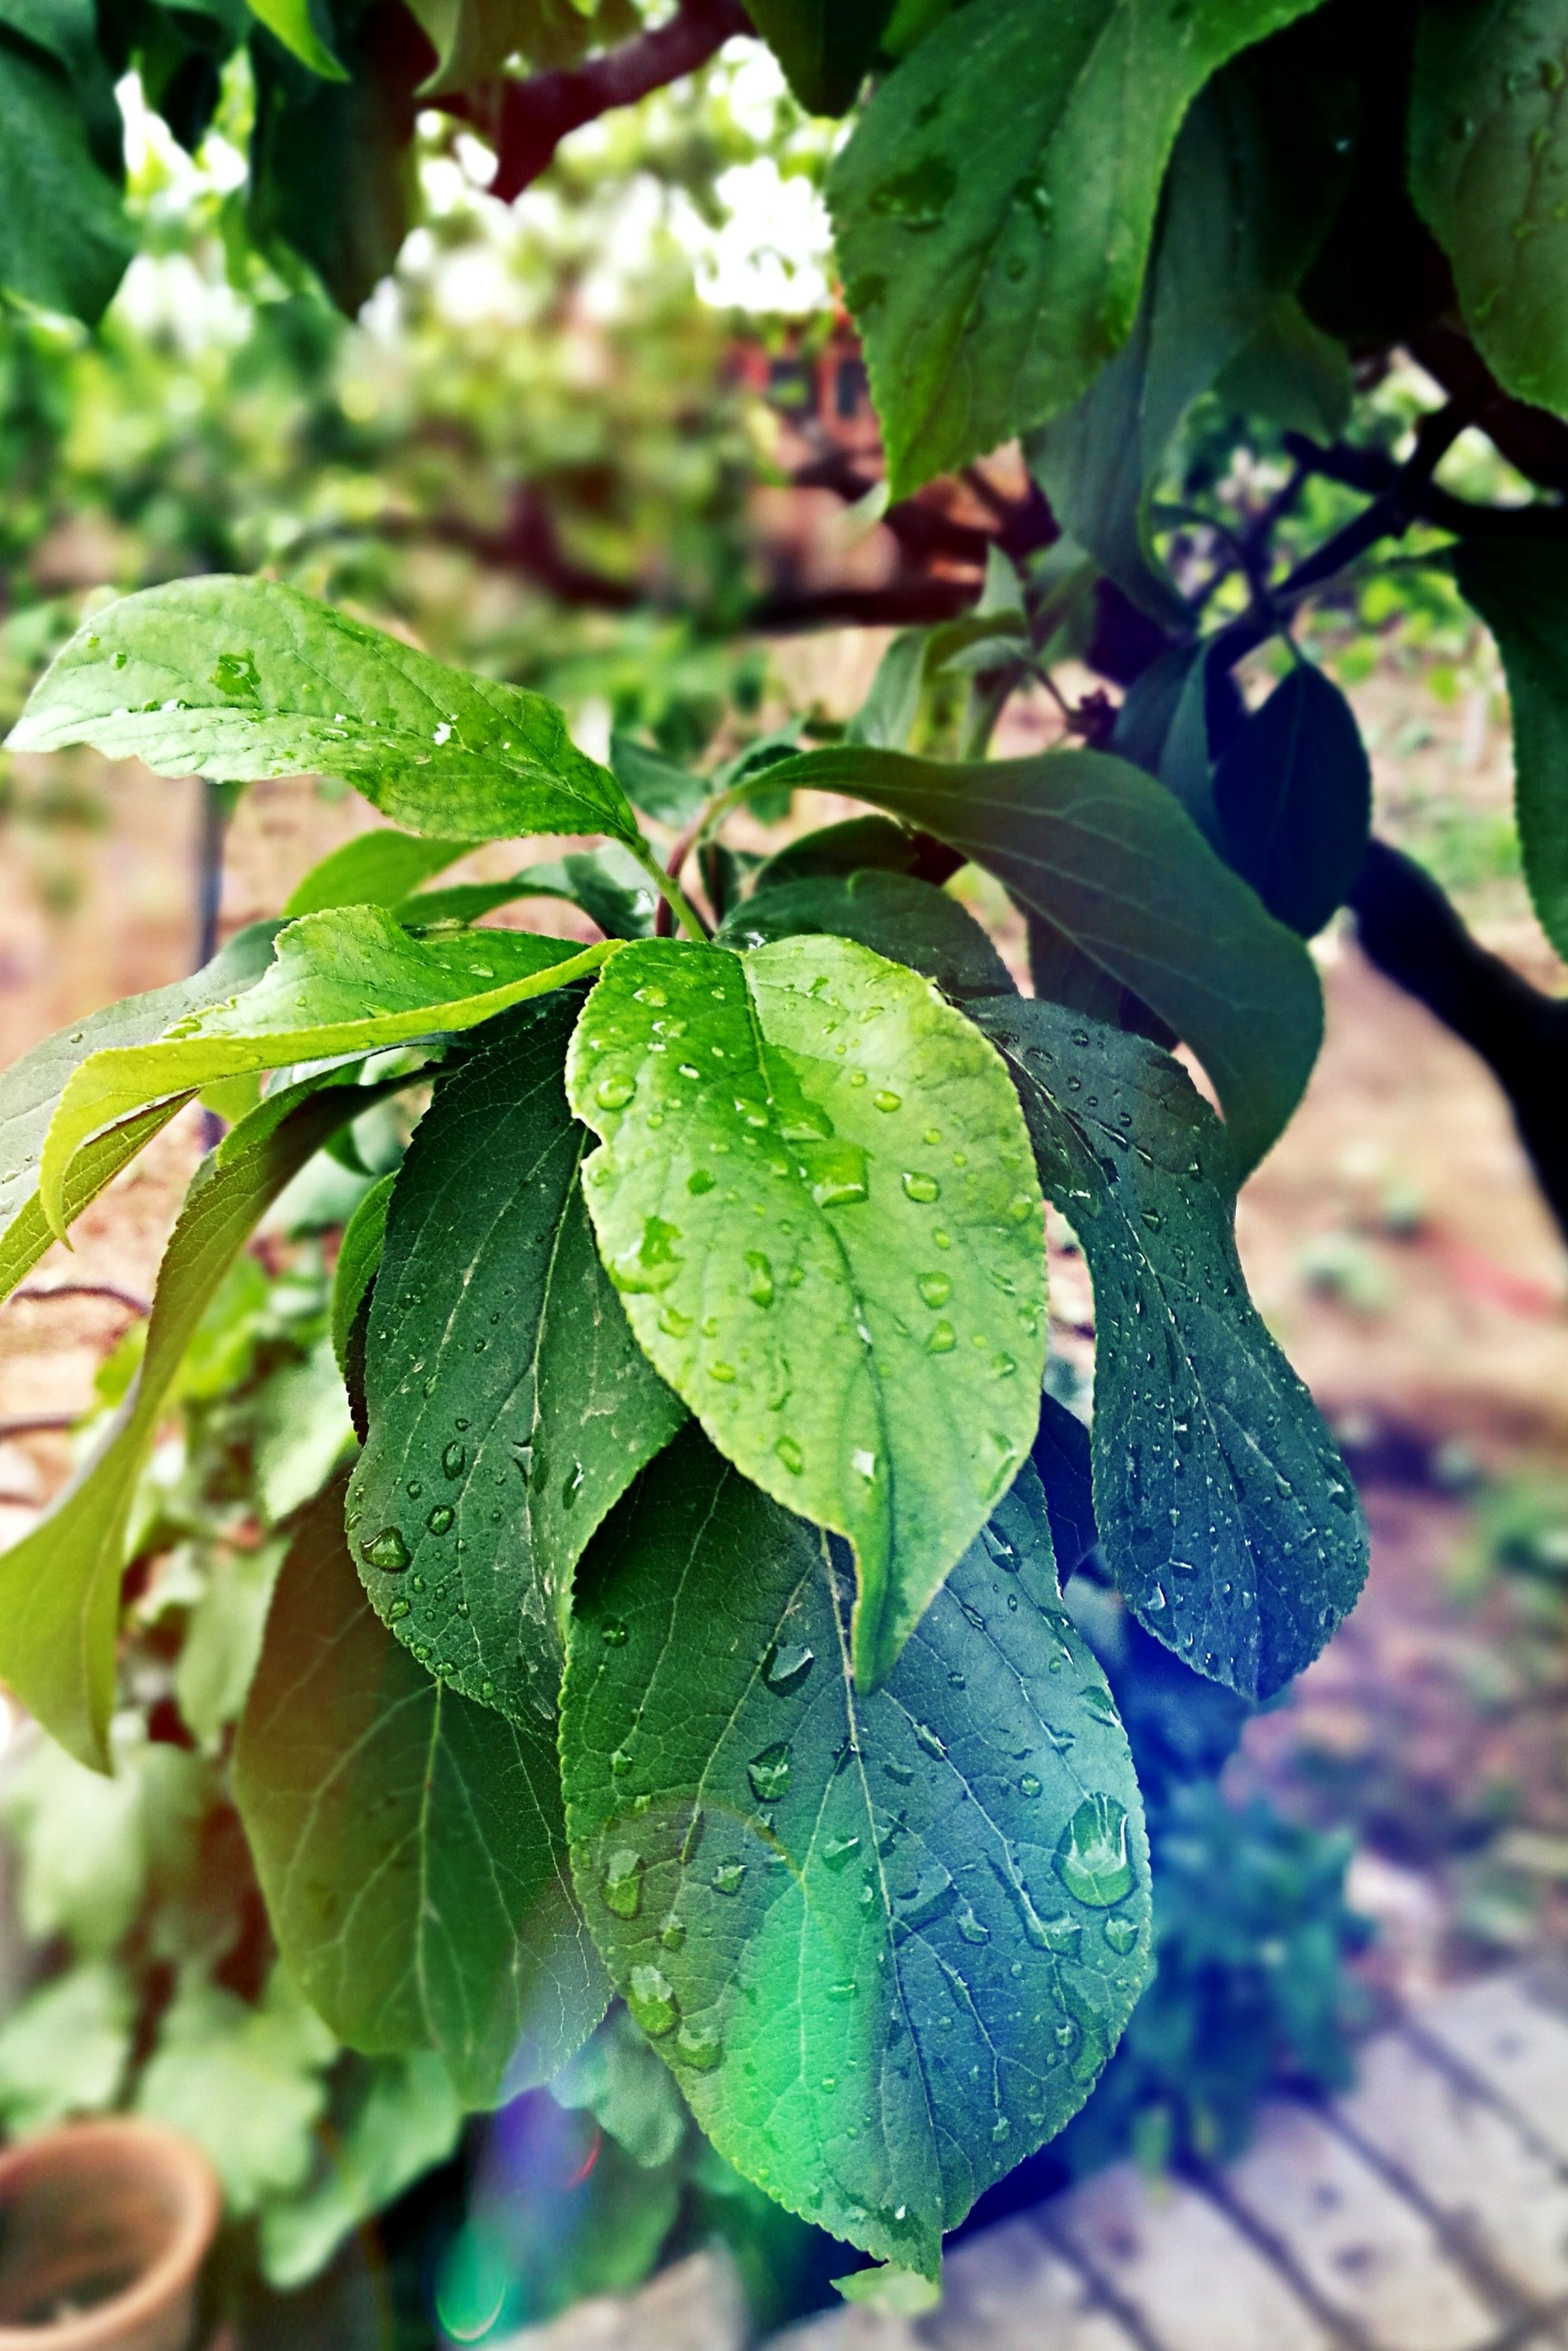 leaf, green color, growth, plant, nature, drop, close-up, freshness, no people, beauty in nature, outdoors, focus on foreground, wet, day, raindrop, fragility, water, branch, tree, flower, flower head